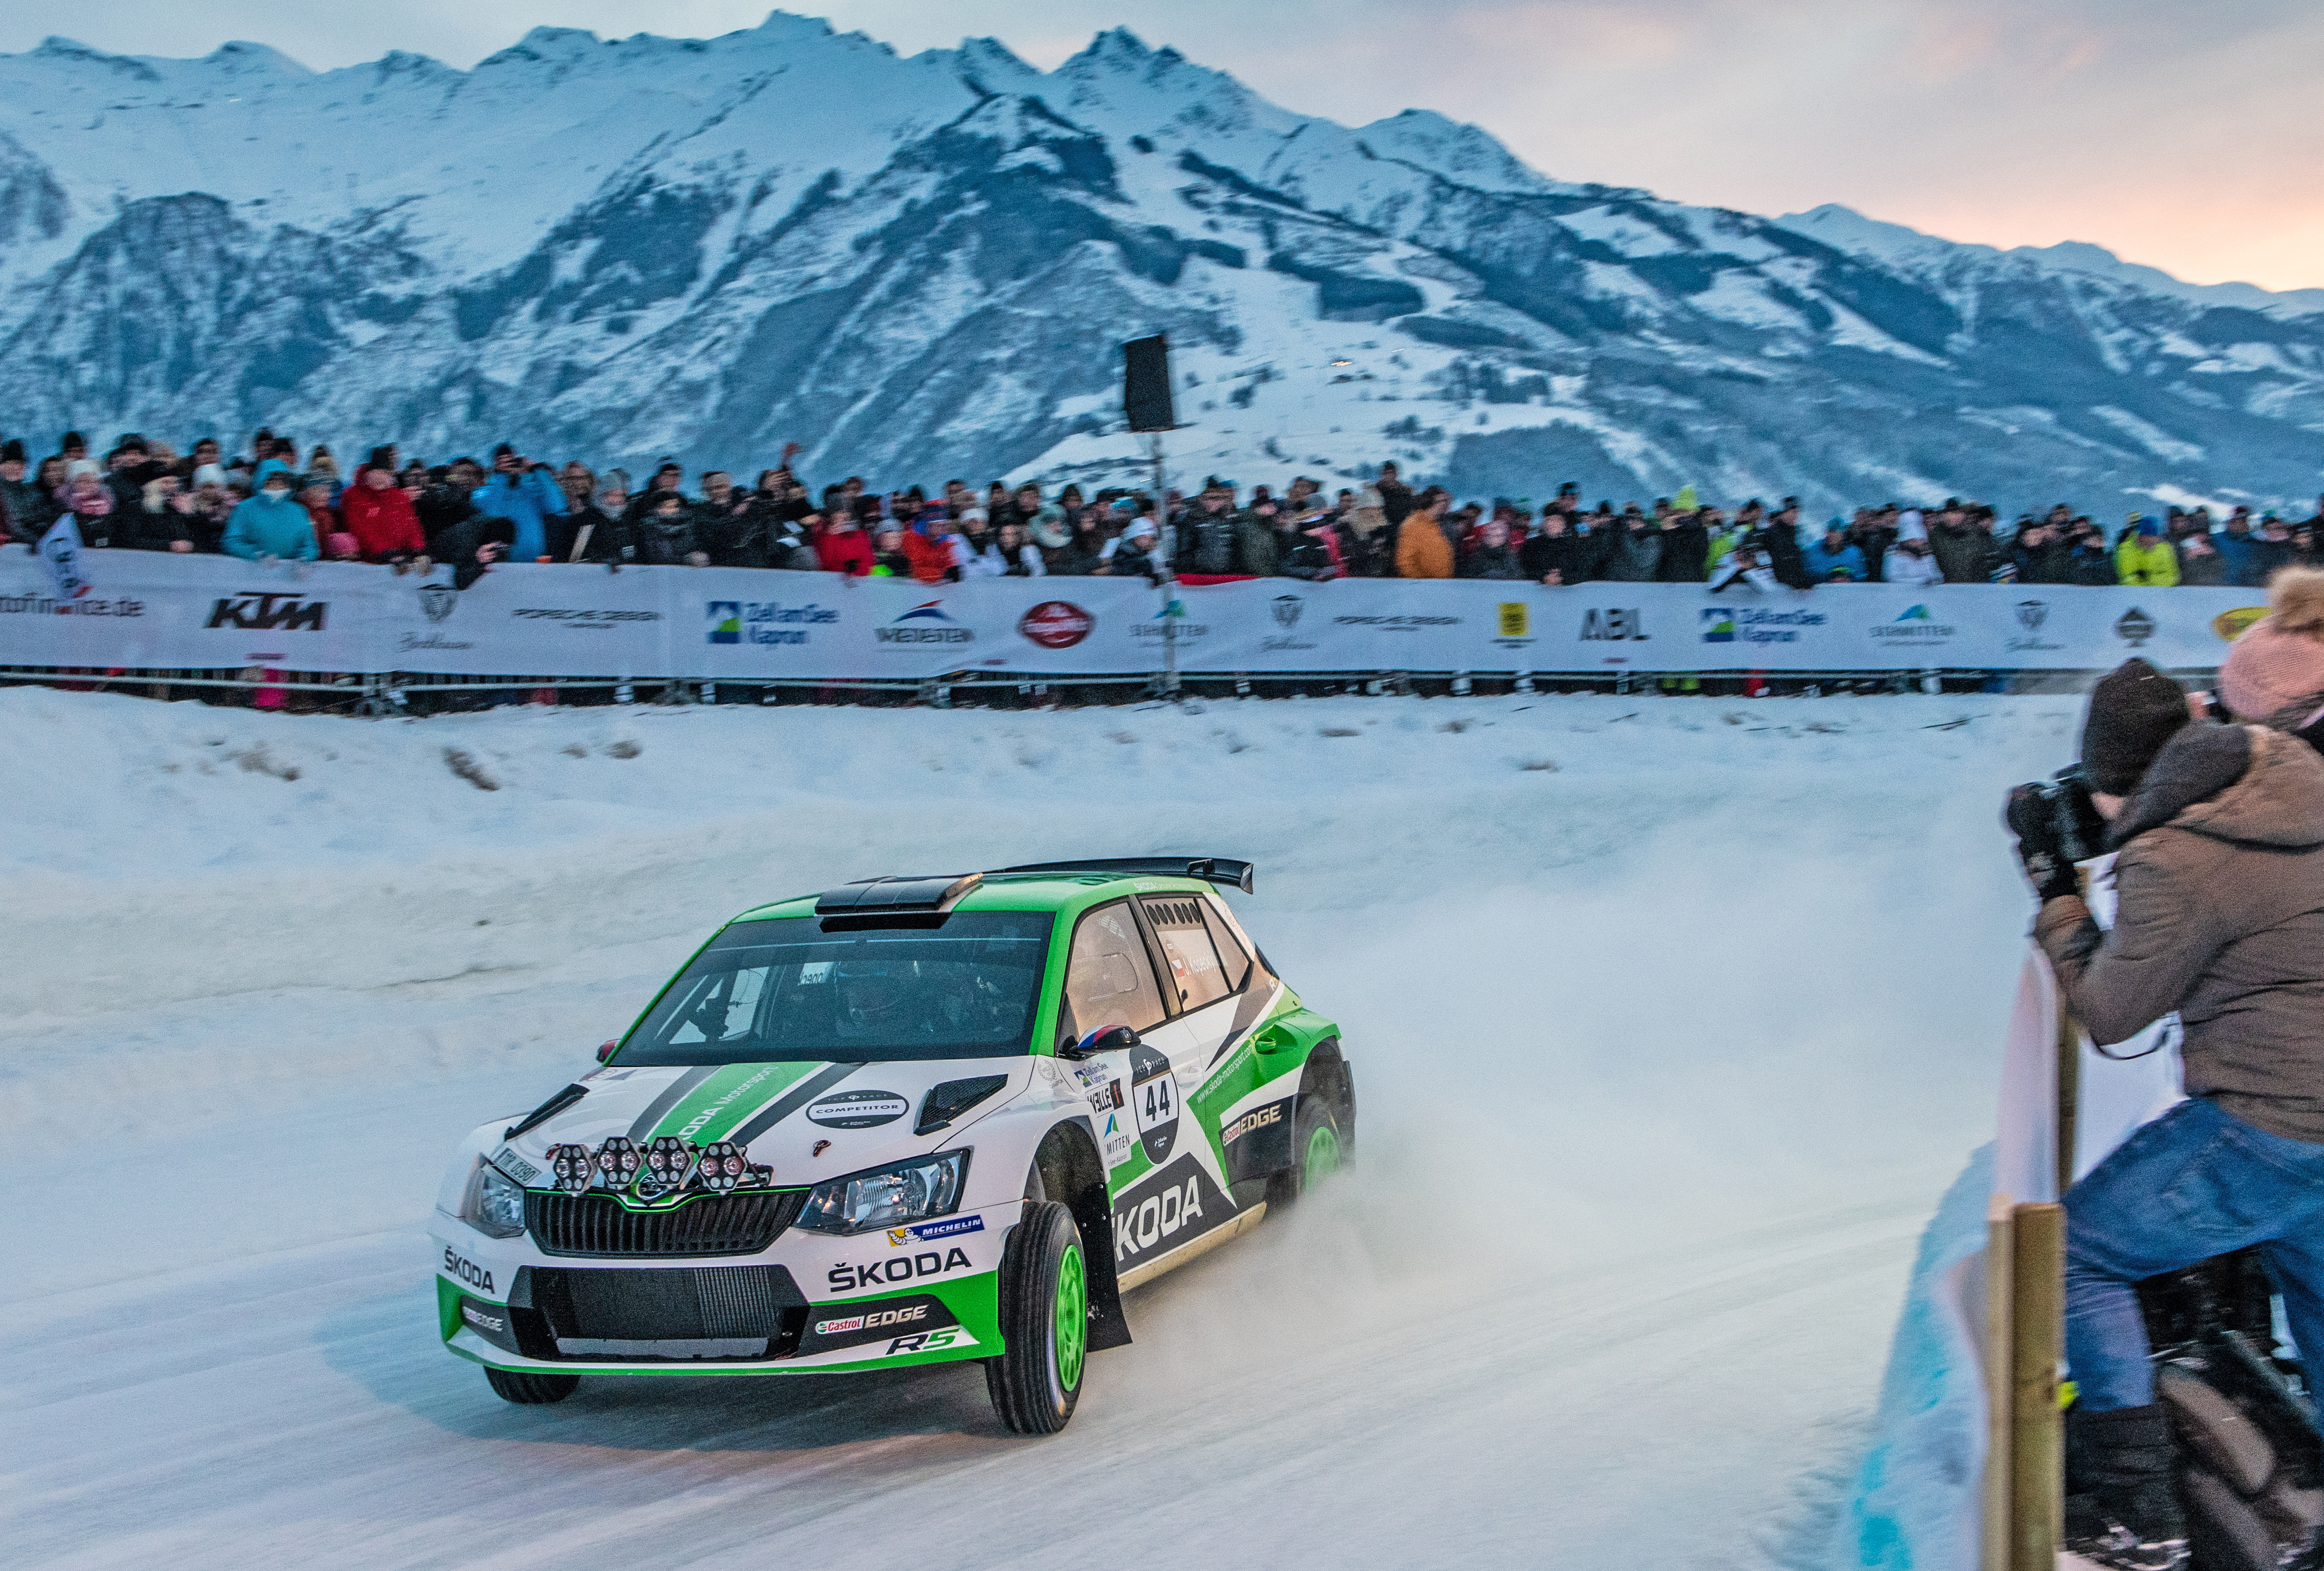 """SKODA features own """"Ice Race of Champions"""" at Austrian winter-sport resort in Zell am See-Kaprun - Image 2"""